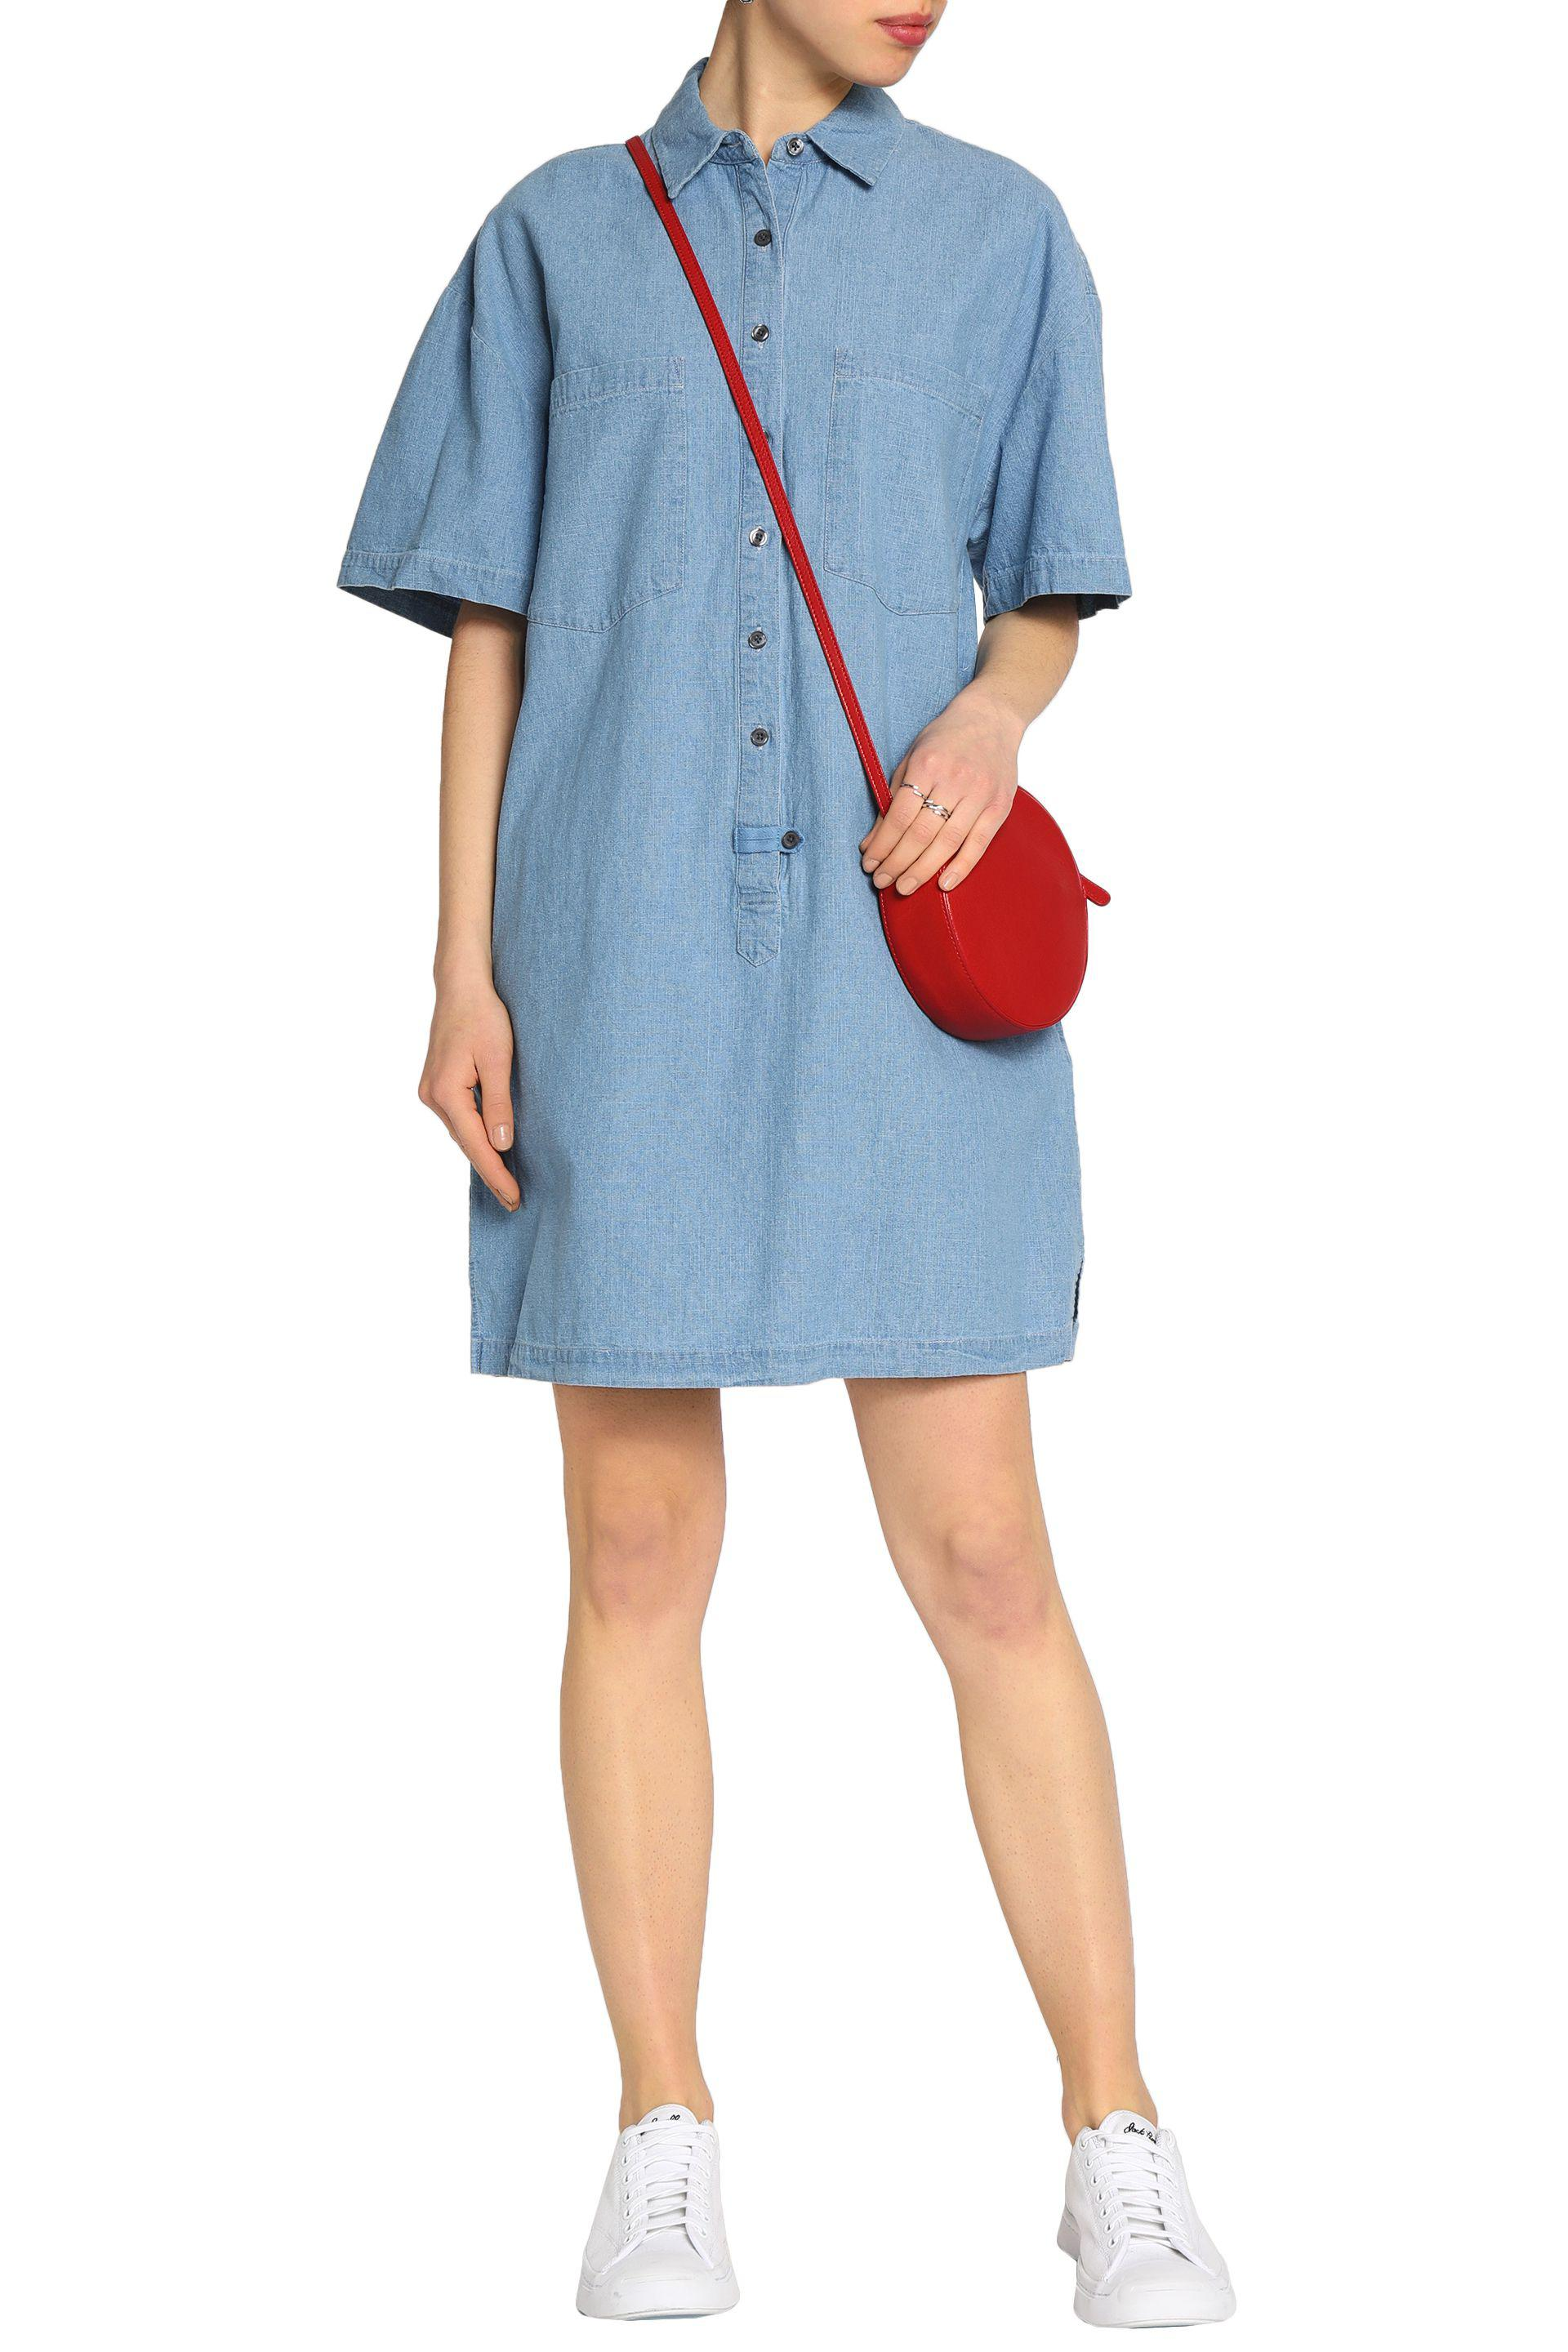 Buy Online With Paypal Derek Lam 10 Crosby Woman Cotton-chambray Shirt Dress Light Blue Size S Derek Lam Buy Cheap Eastbay blMJ101